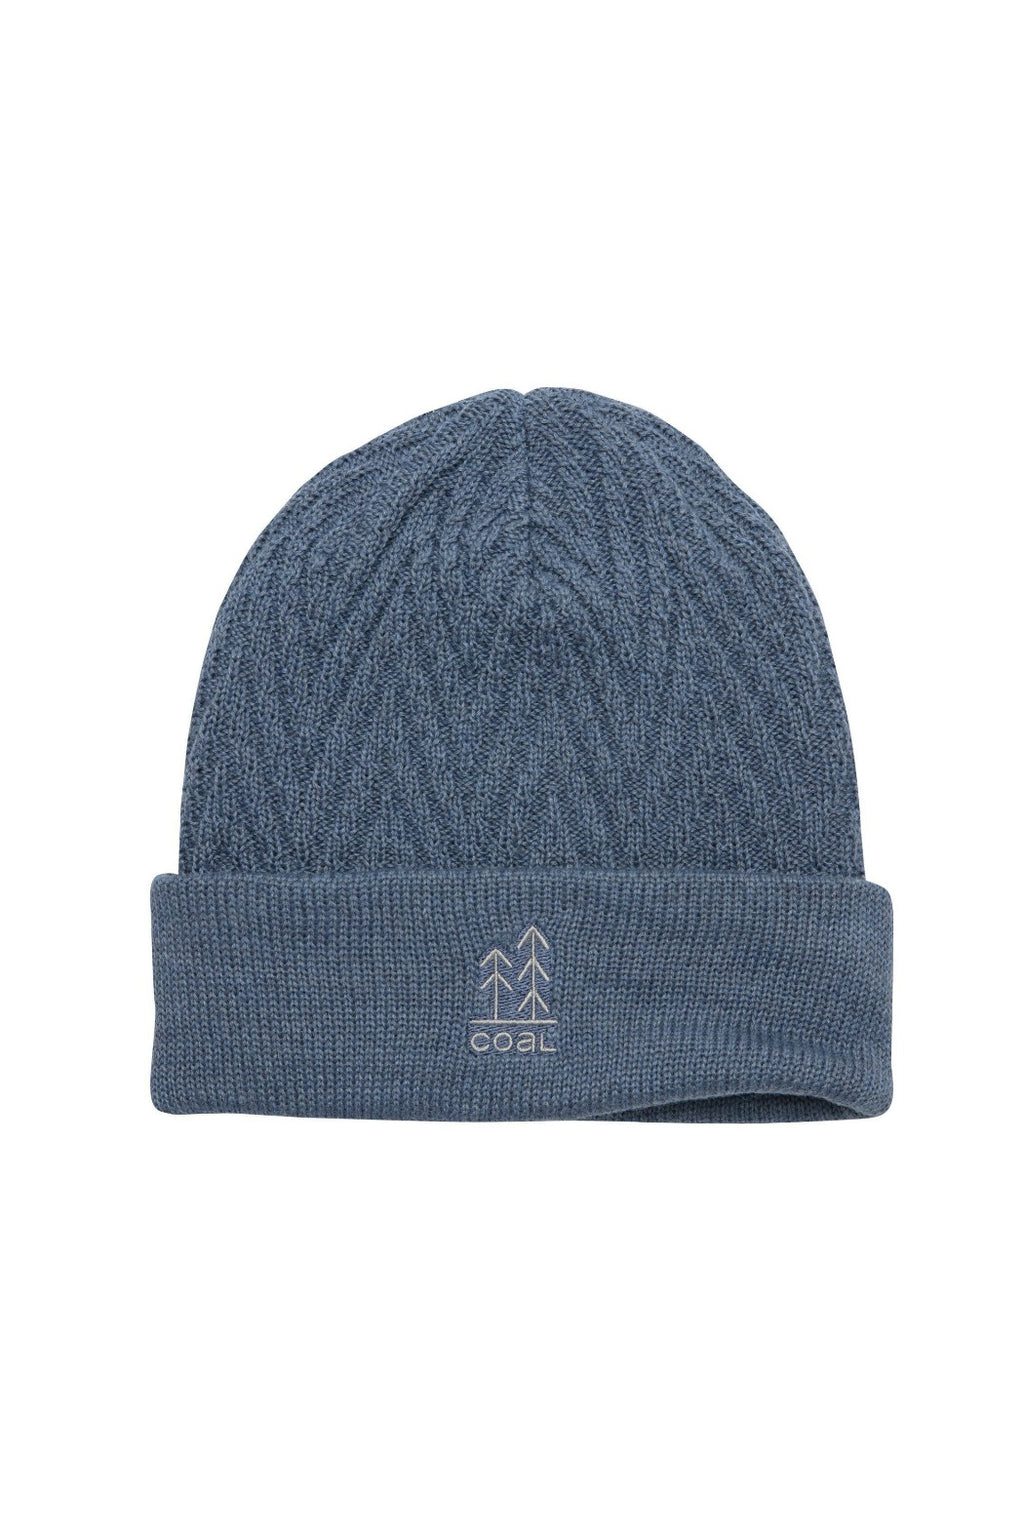 Coal Winslow Beanie - Heather Navy